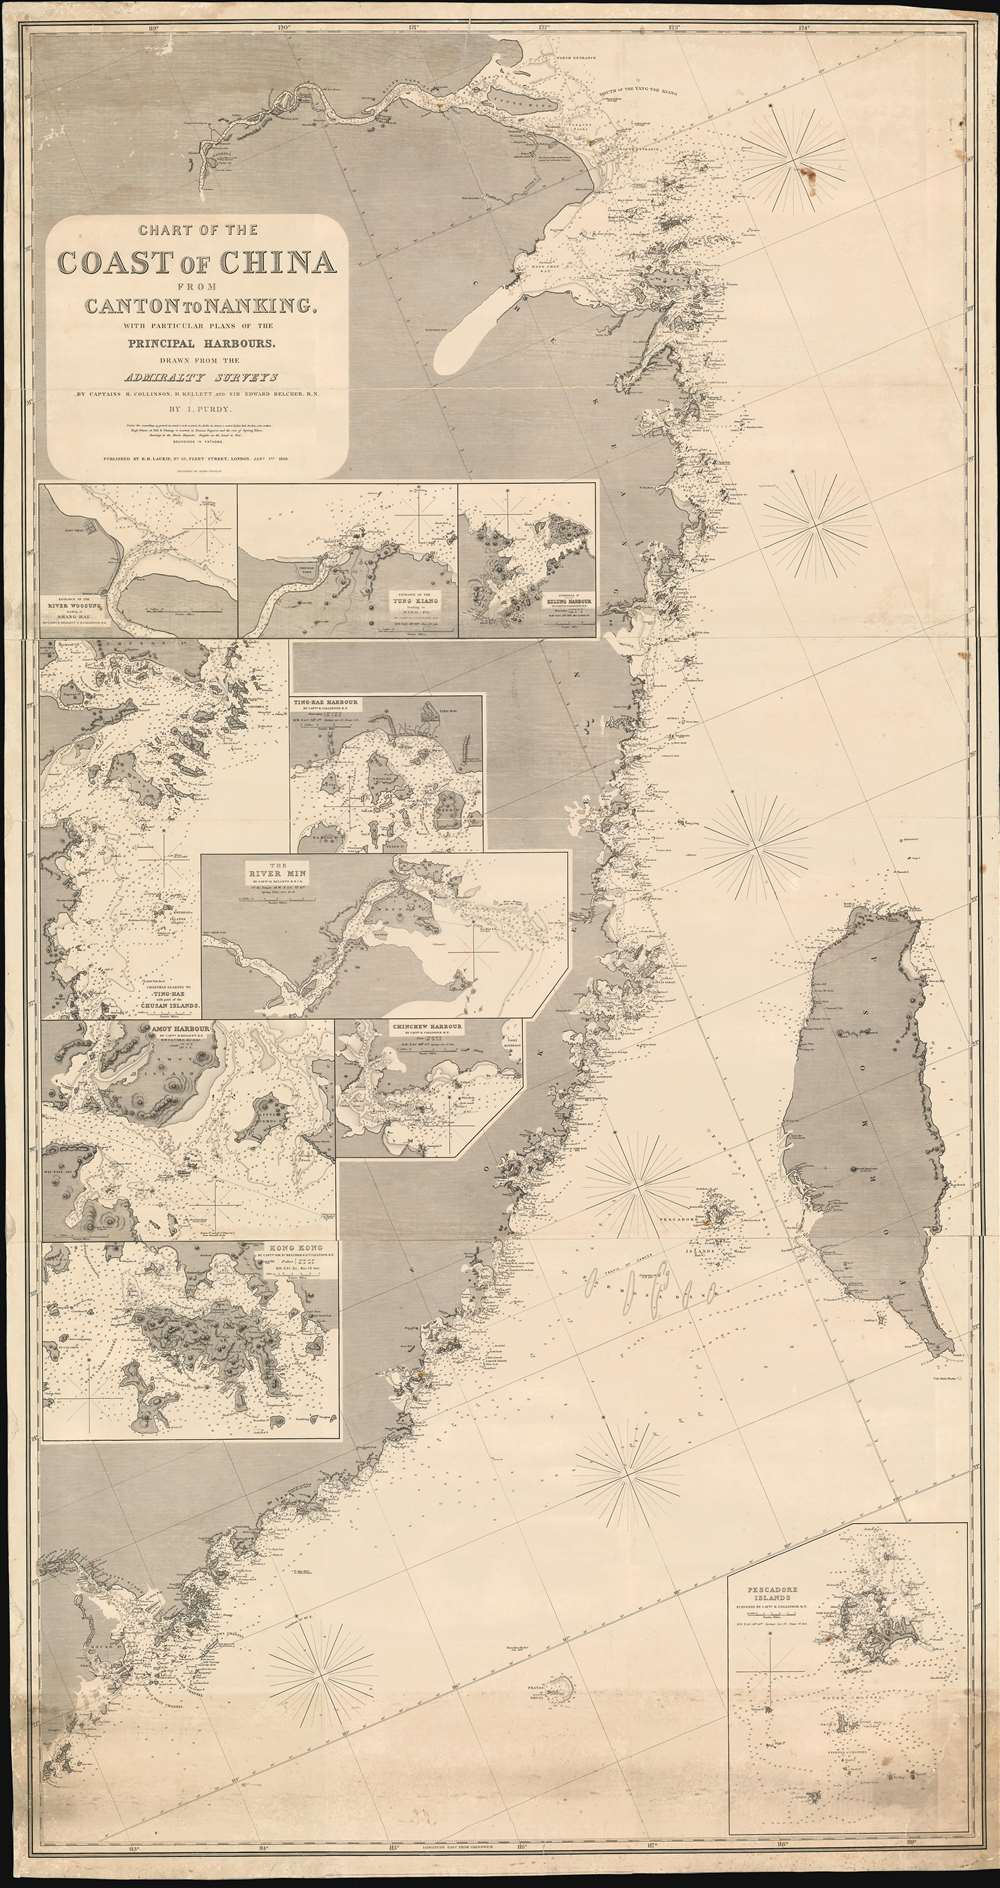 Chart of the Coast of China from Canton to Nanking, with particular plans of the principal Harbors, Drawn from the Admiralty Surveys by Captains R. Collinson, H. Kellett and Sir Edwad Belcher, R. N. - Main View